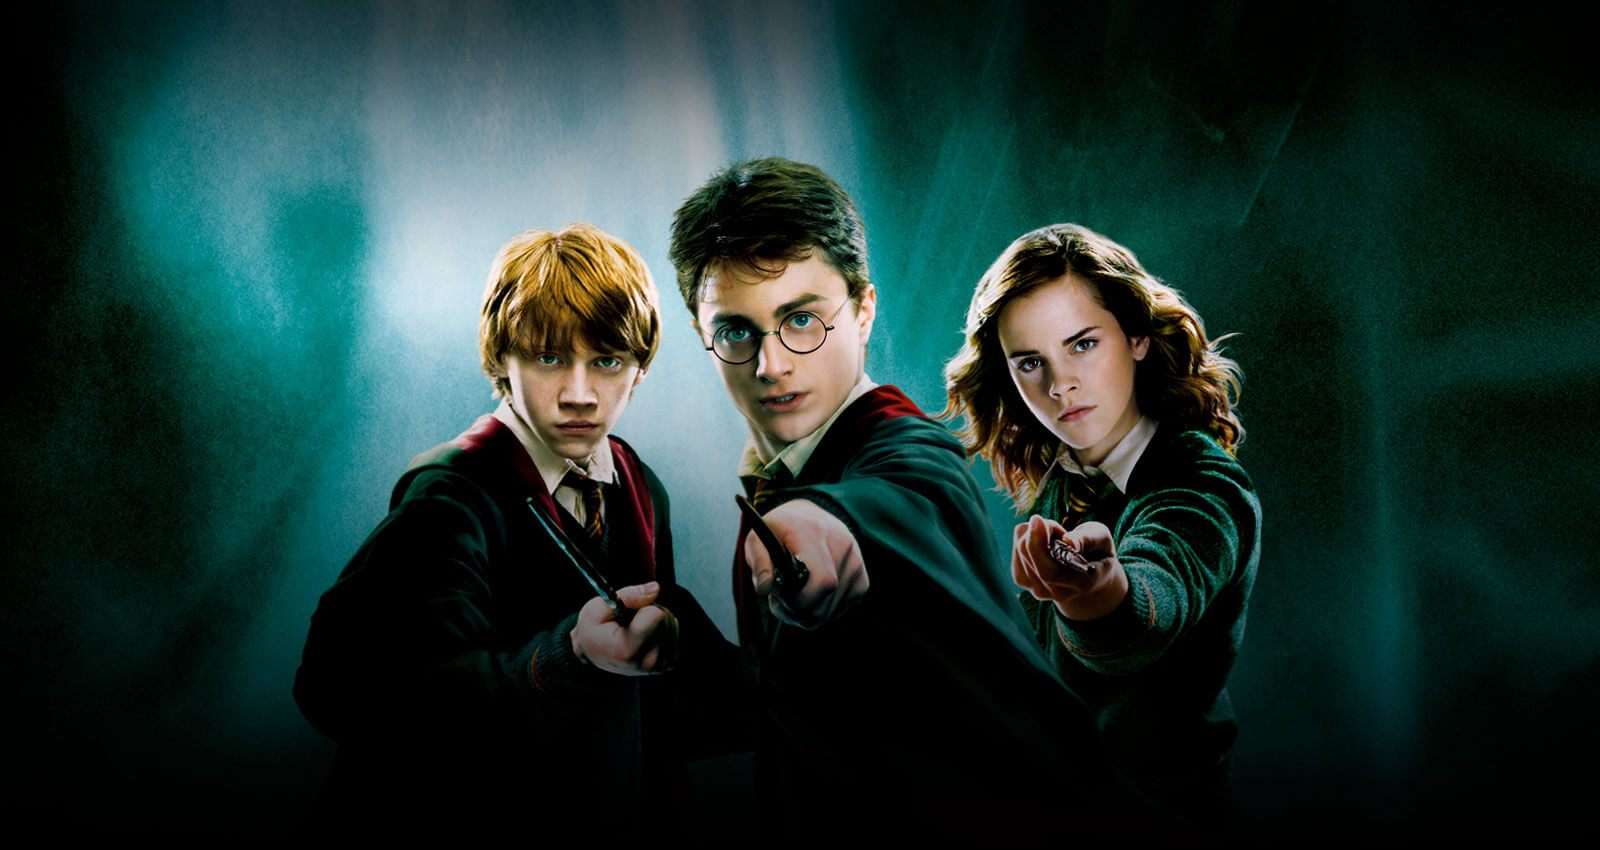 La mostra evento di Harry Potter in arrivo a Milano